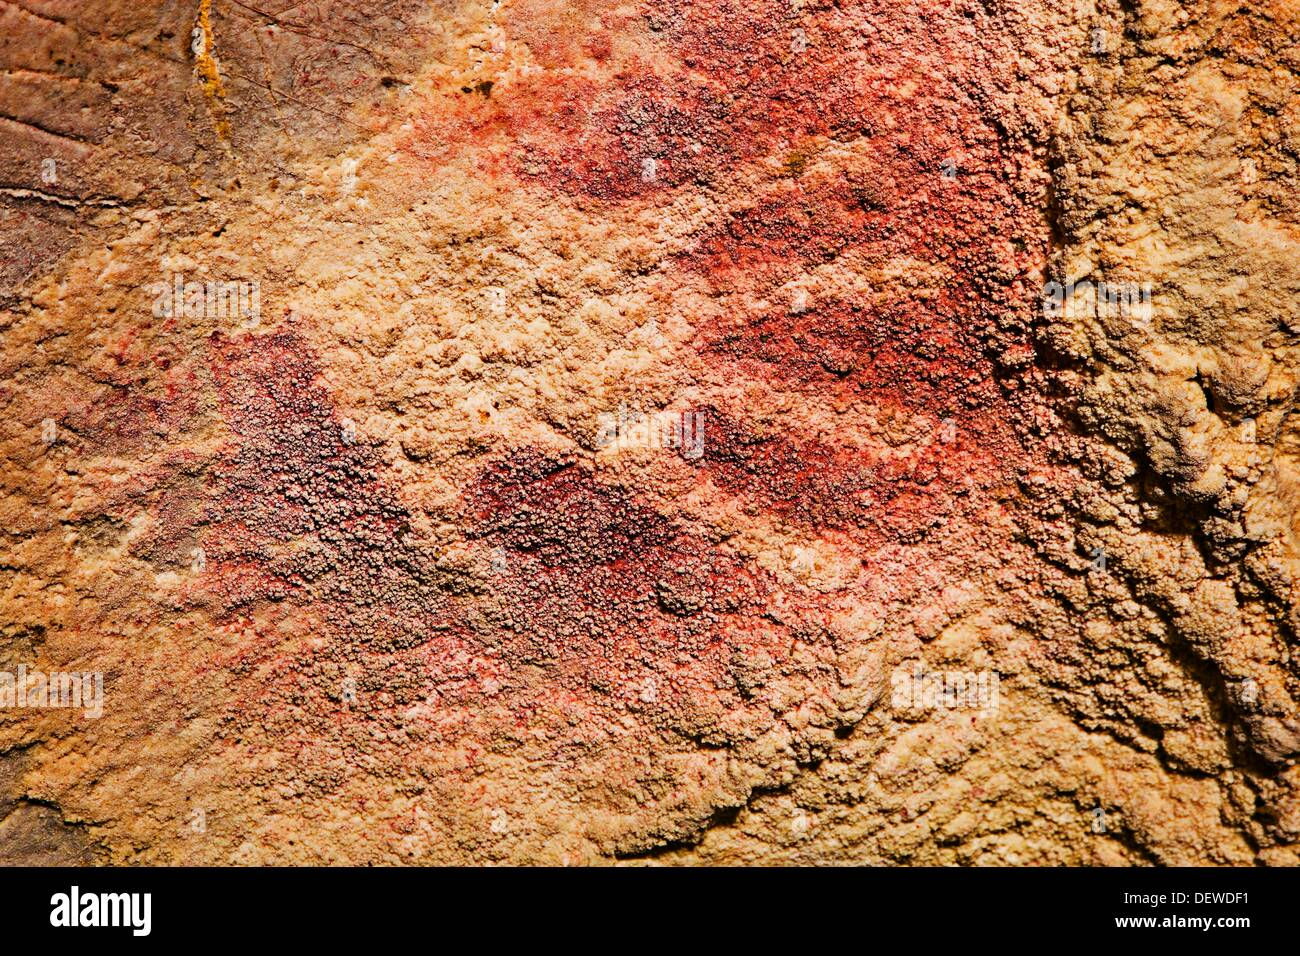 The frieze of the hands  Paleolithic  Monte Castillo caves  Puente Viesgo  Pas valley  Cantabria  Spain. - Stock Image